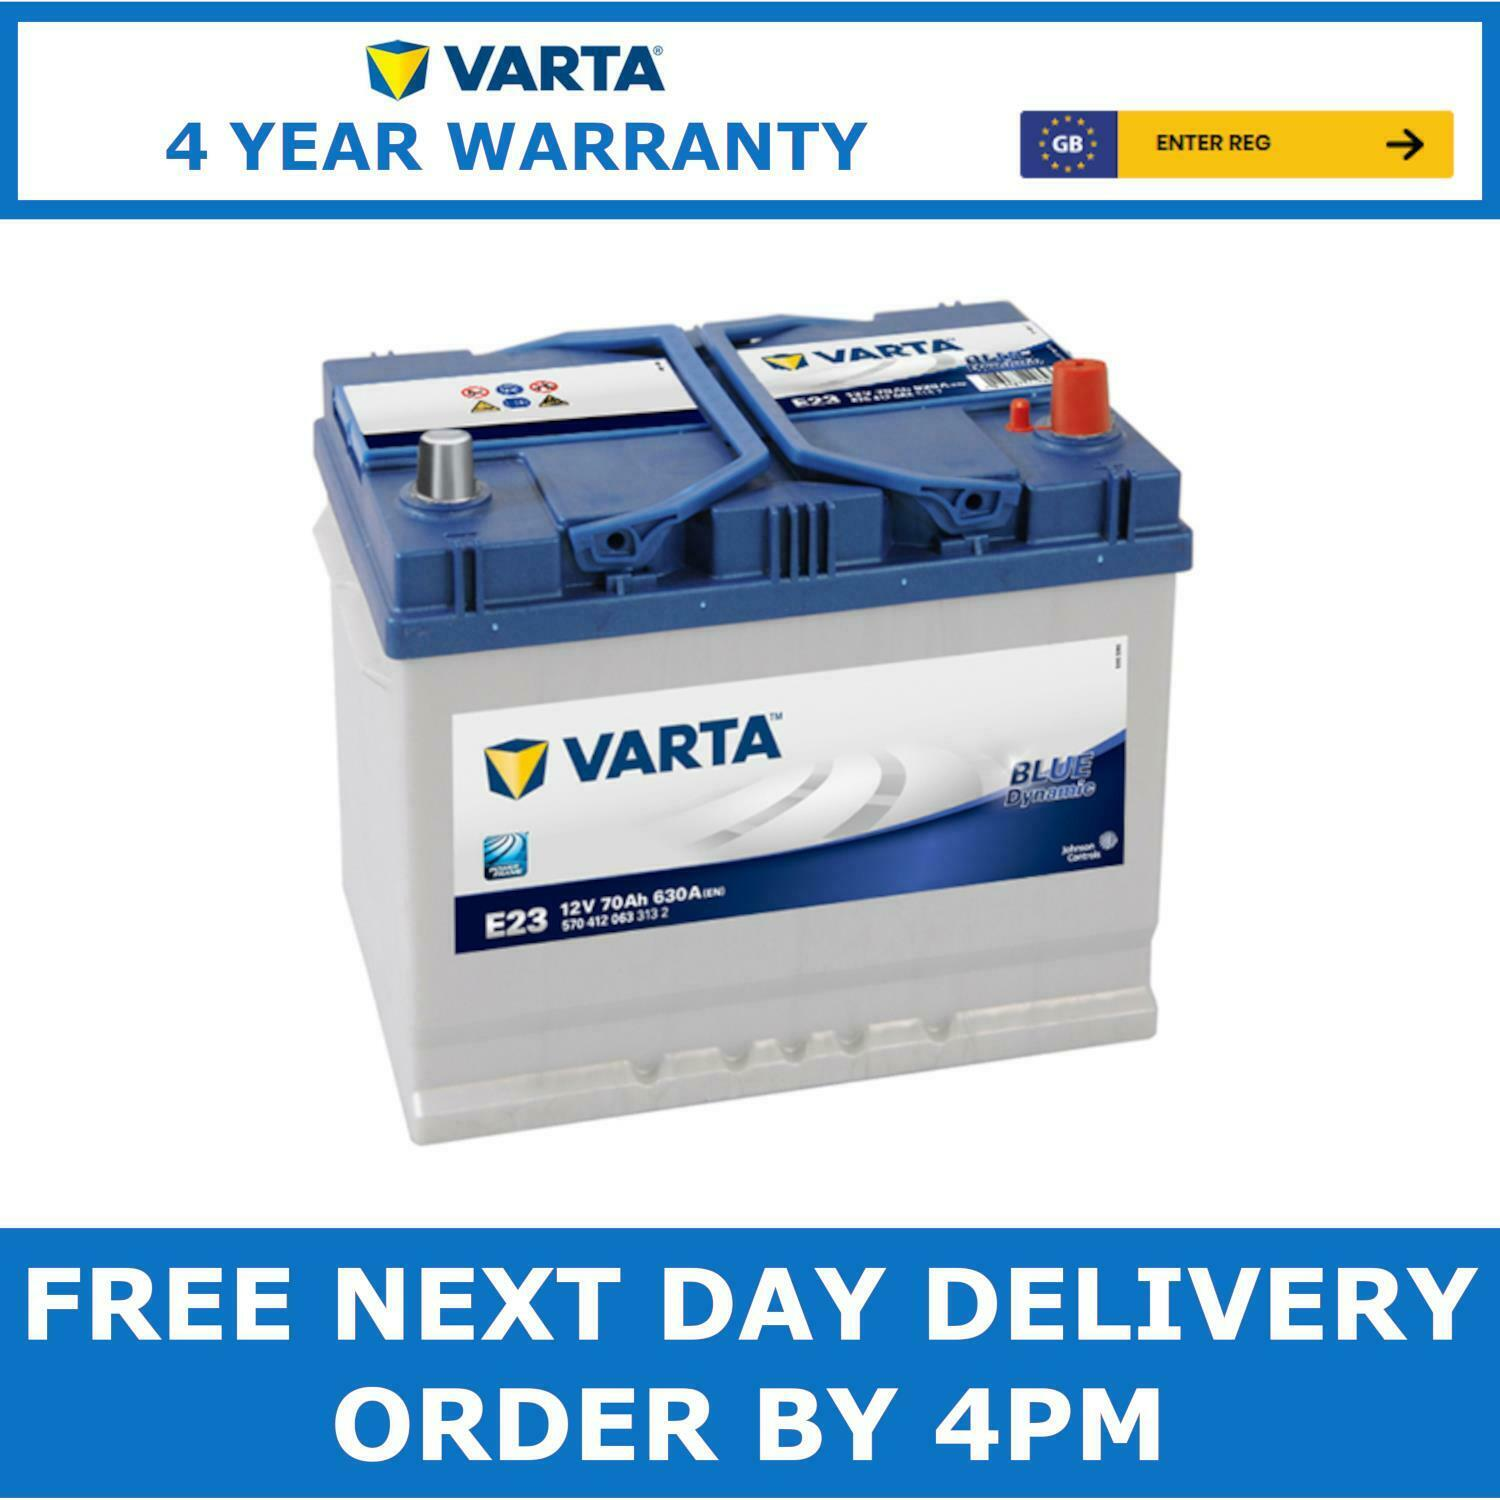 varta e23 blue dynamic heavy duty 068 car battery 70ah 630a 4 year warranty picclick uk. Black Bedroom Furniture Sets. Home Design Ideas